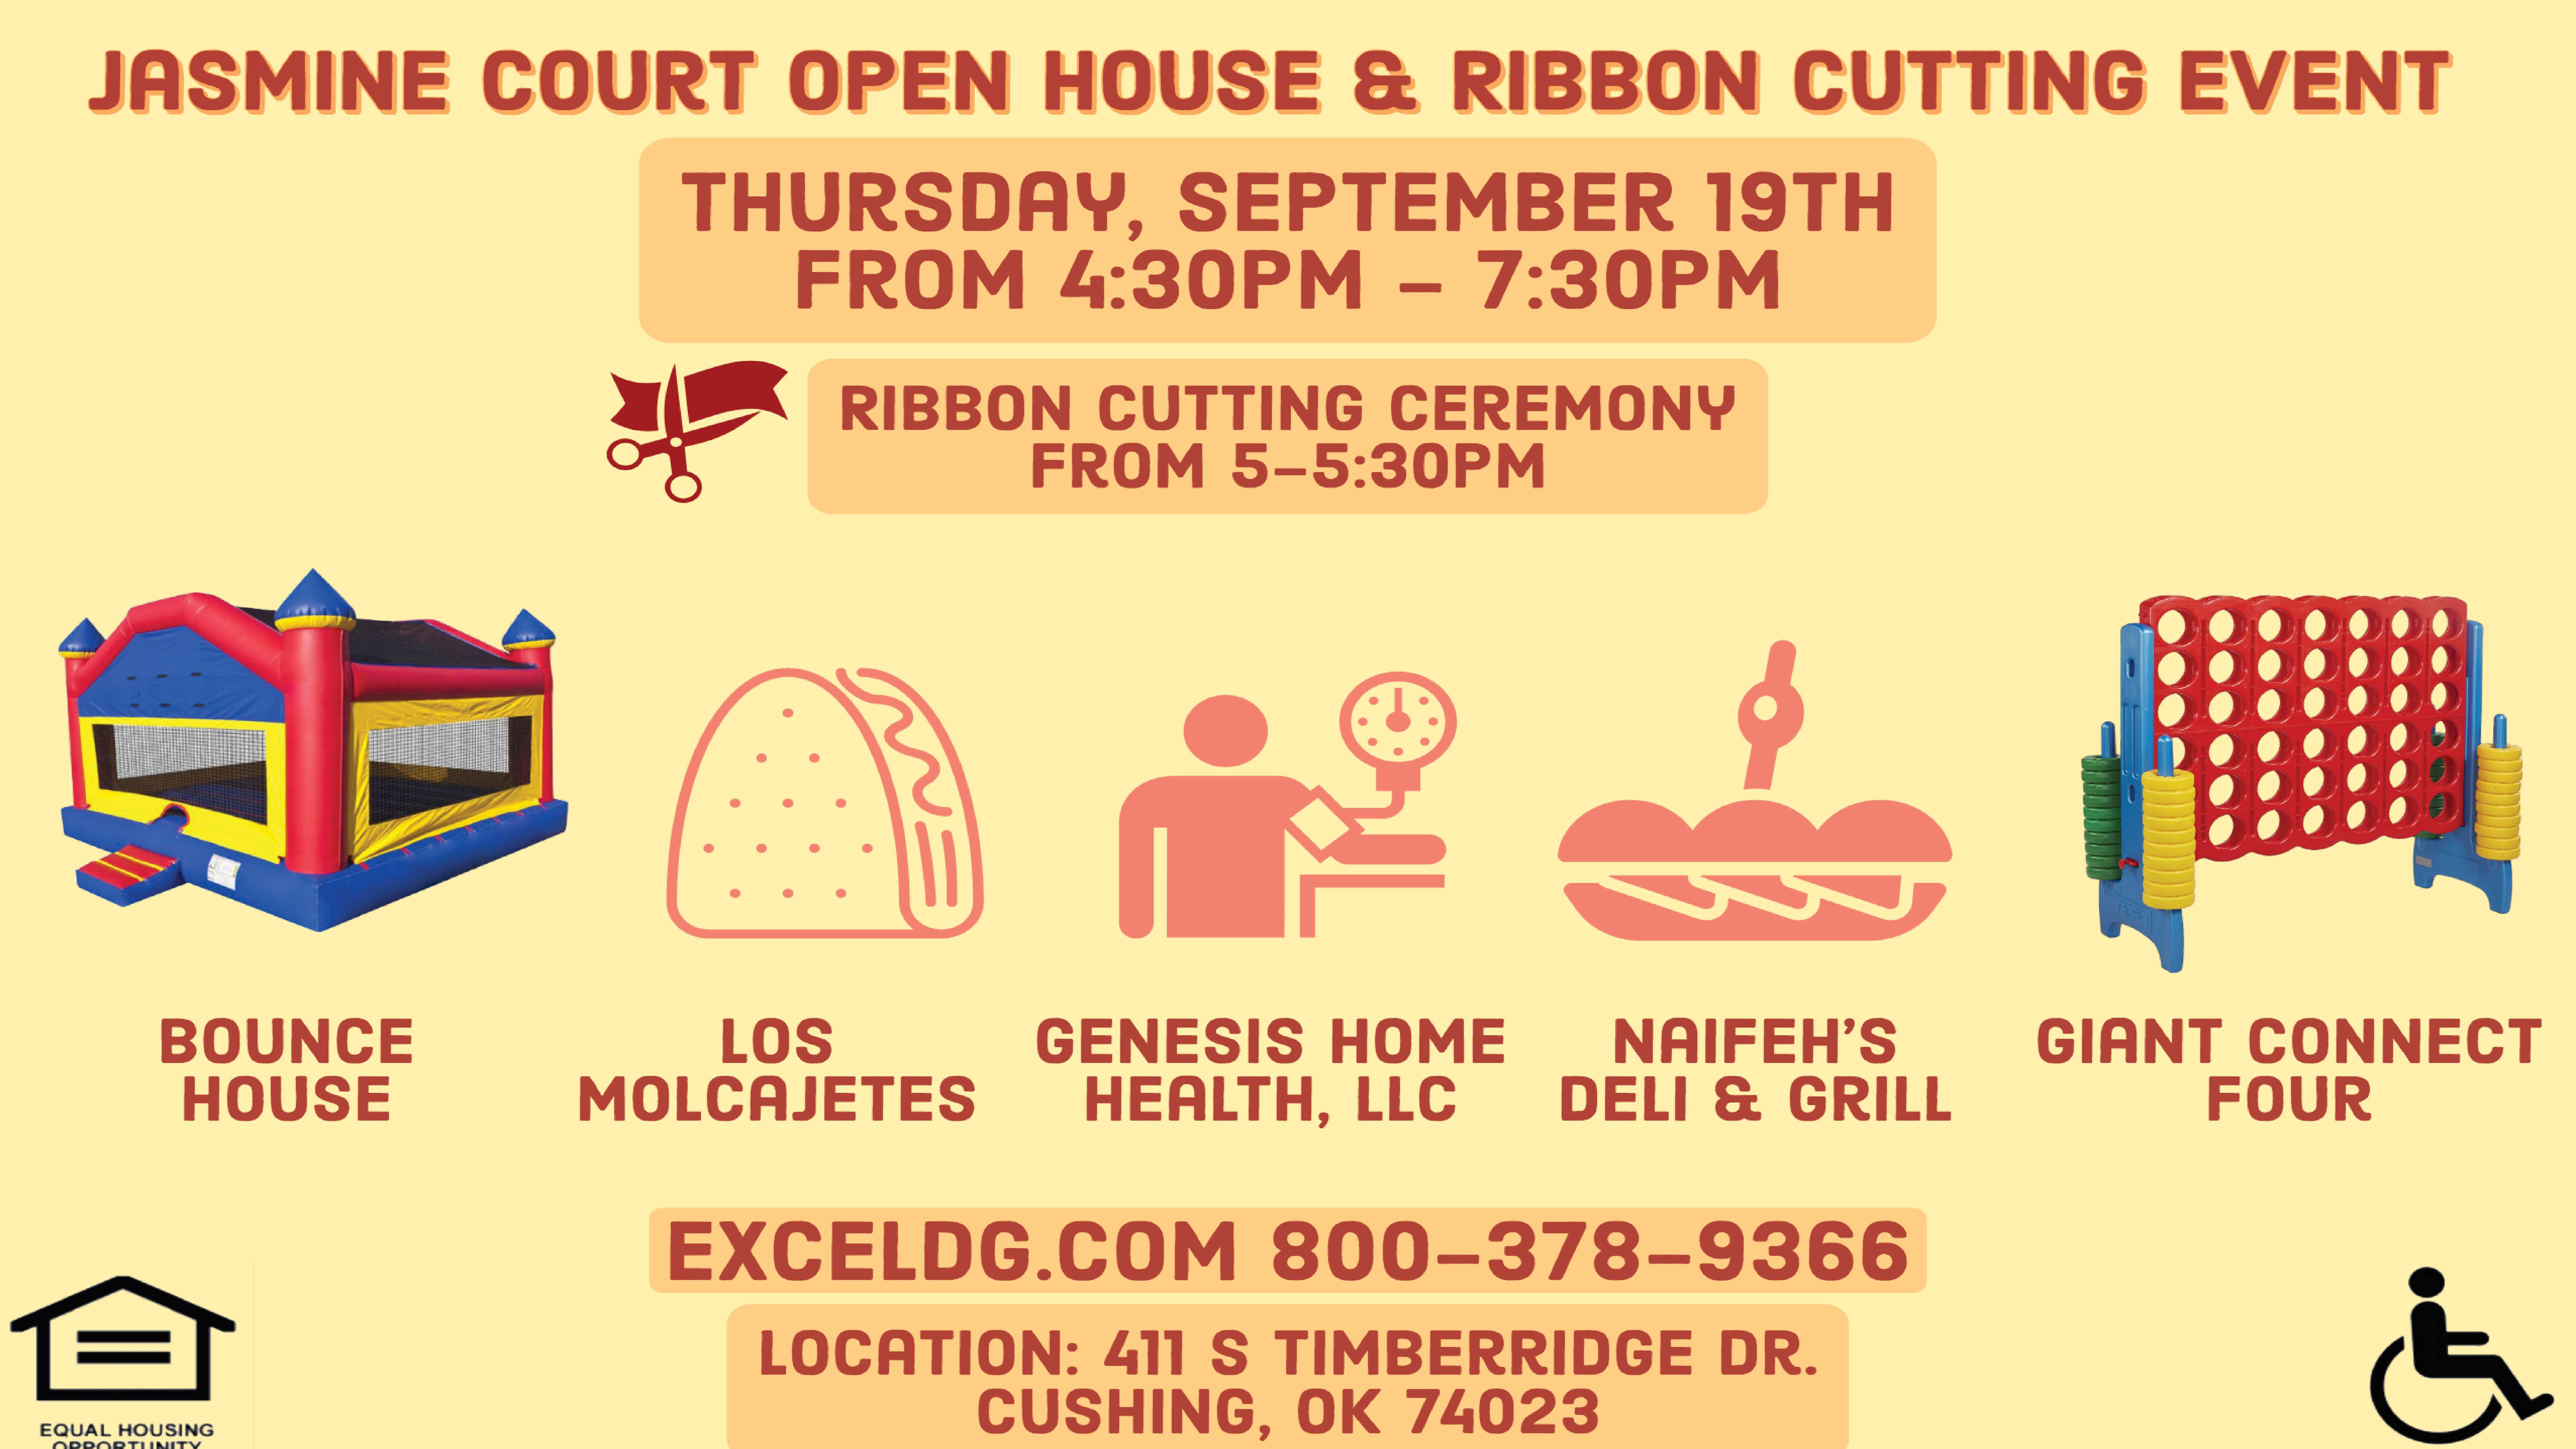 Open House and Ribbon Cutting Event at Jasmine Court